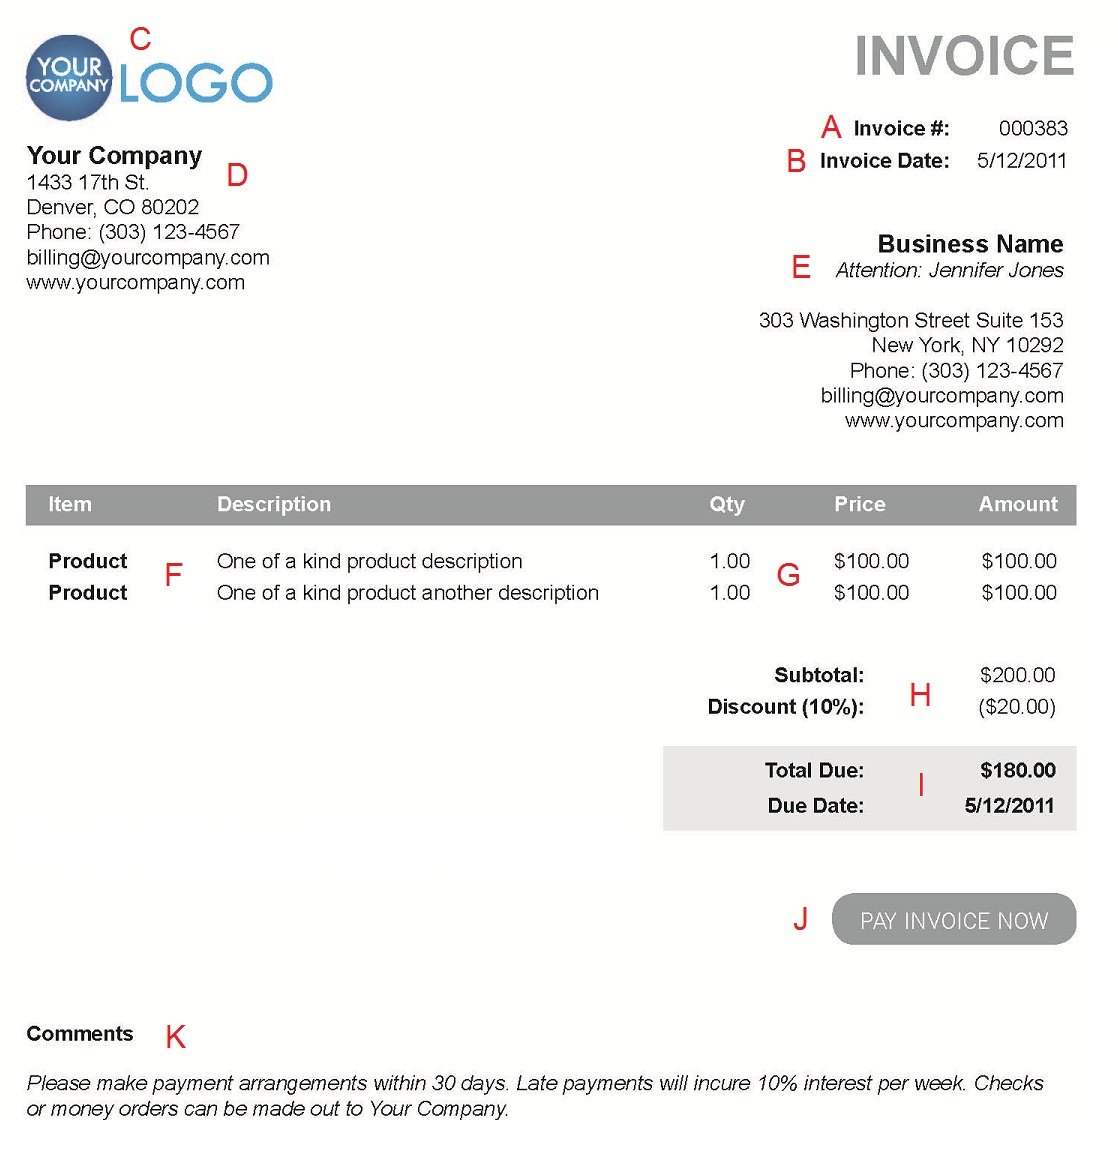 Usdgus  Personable The  Different Sections Of An Electronic Payment Invoice With Hot A  With Delightful Hotel Receipt Template Also Receipt Example In Addition Receipt Box And Read Receipt Outlook  As Well As Movie Receipts Additionally Petsmart Return Policy Without Receipt From Paysimplecom With Usdgus  Hot The  Different Sections Of An Electronic Payment Invoice With Delightful A  And Personable Hotel Receipt Template Also Receipt Example In Addition Receipt Box From Paysimplecom